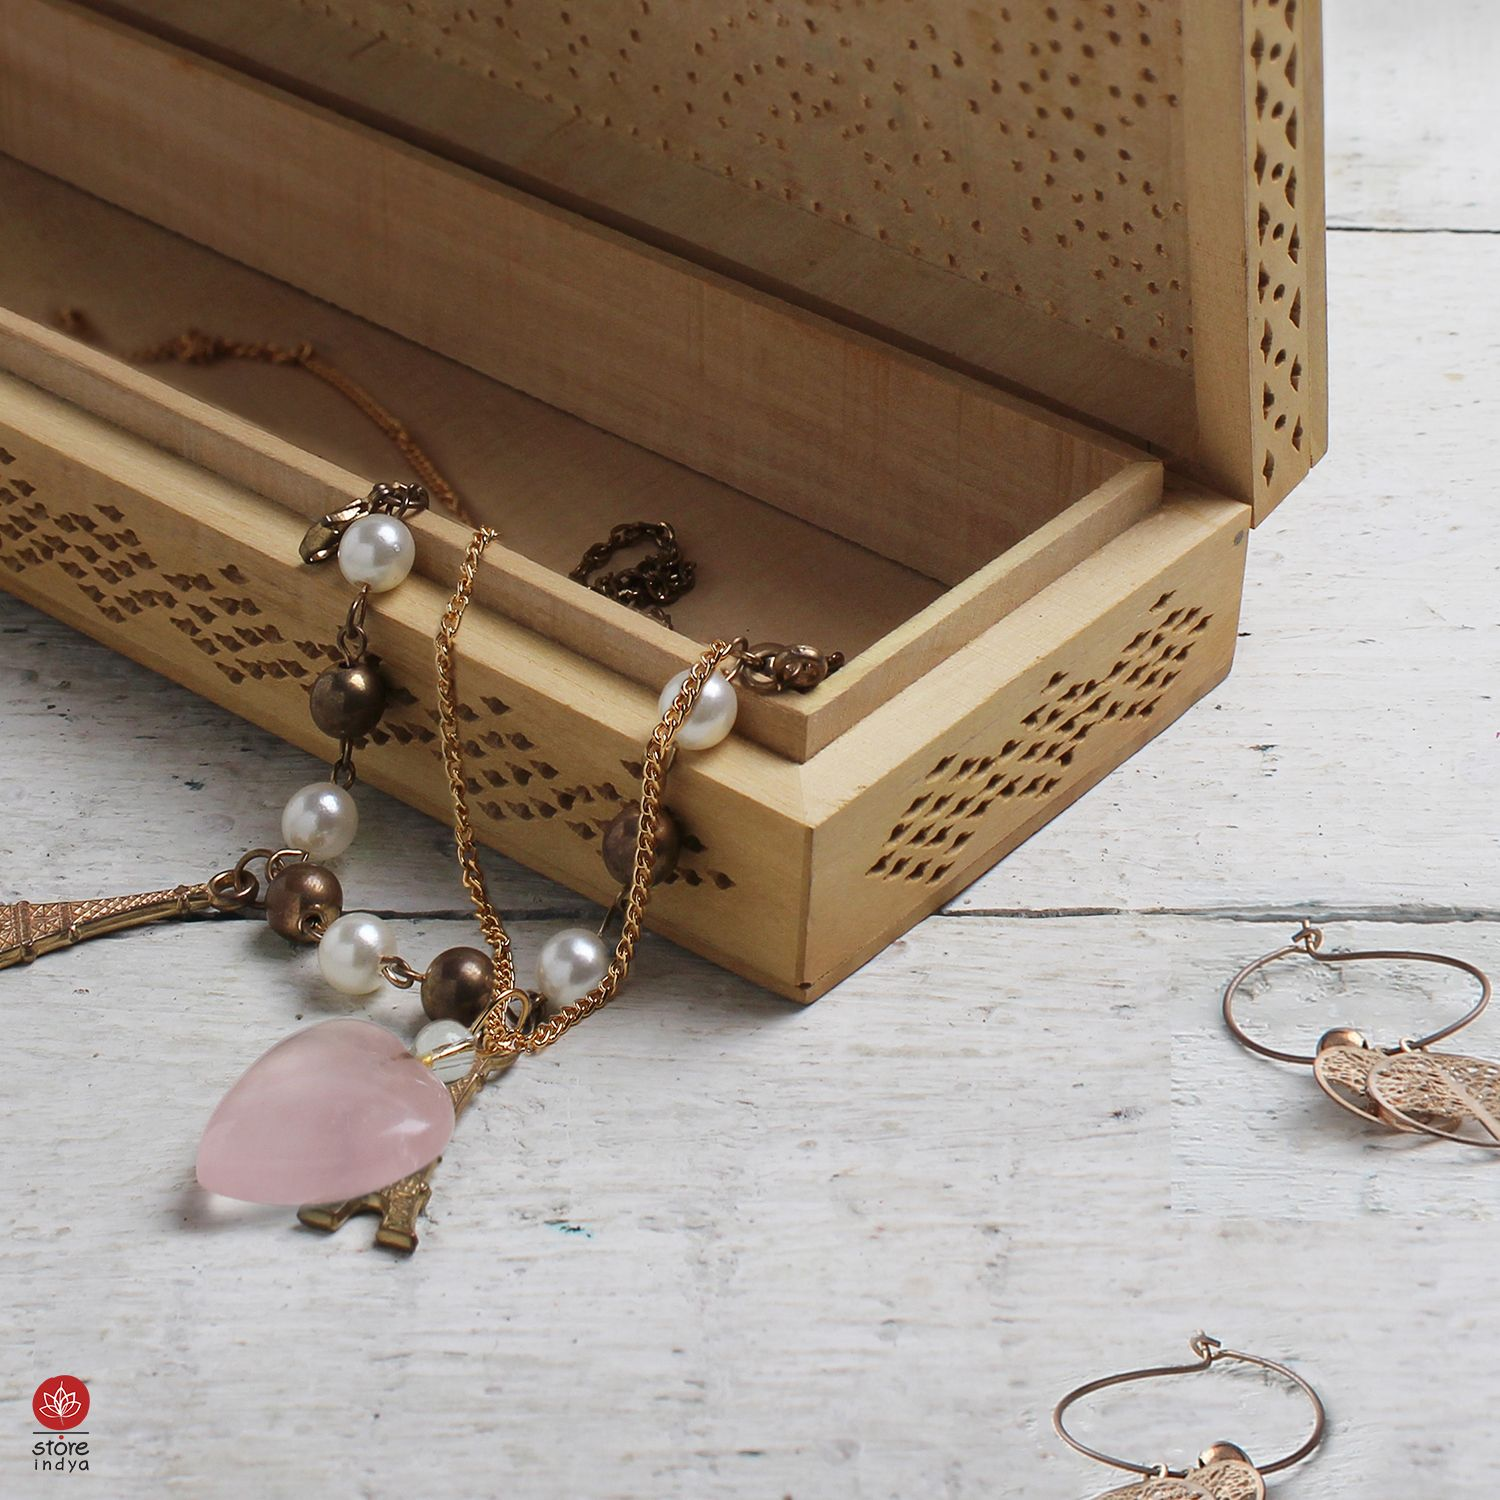 Store Indya Amazon Ca Here S A Multi Utility Box For Your Precious Little Everythings Utility Utilitybox Pe Jewelry Box Utility Box Mother S Day Gifts